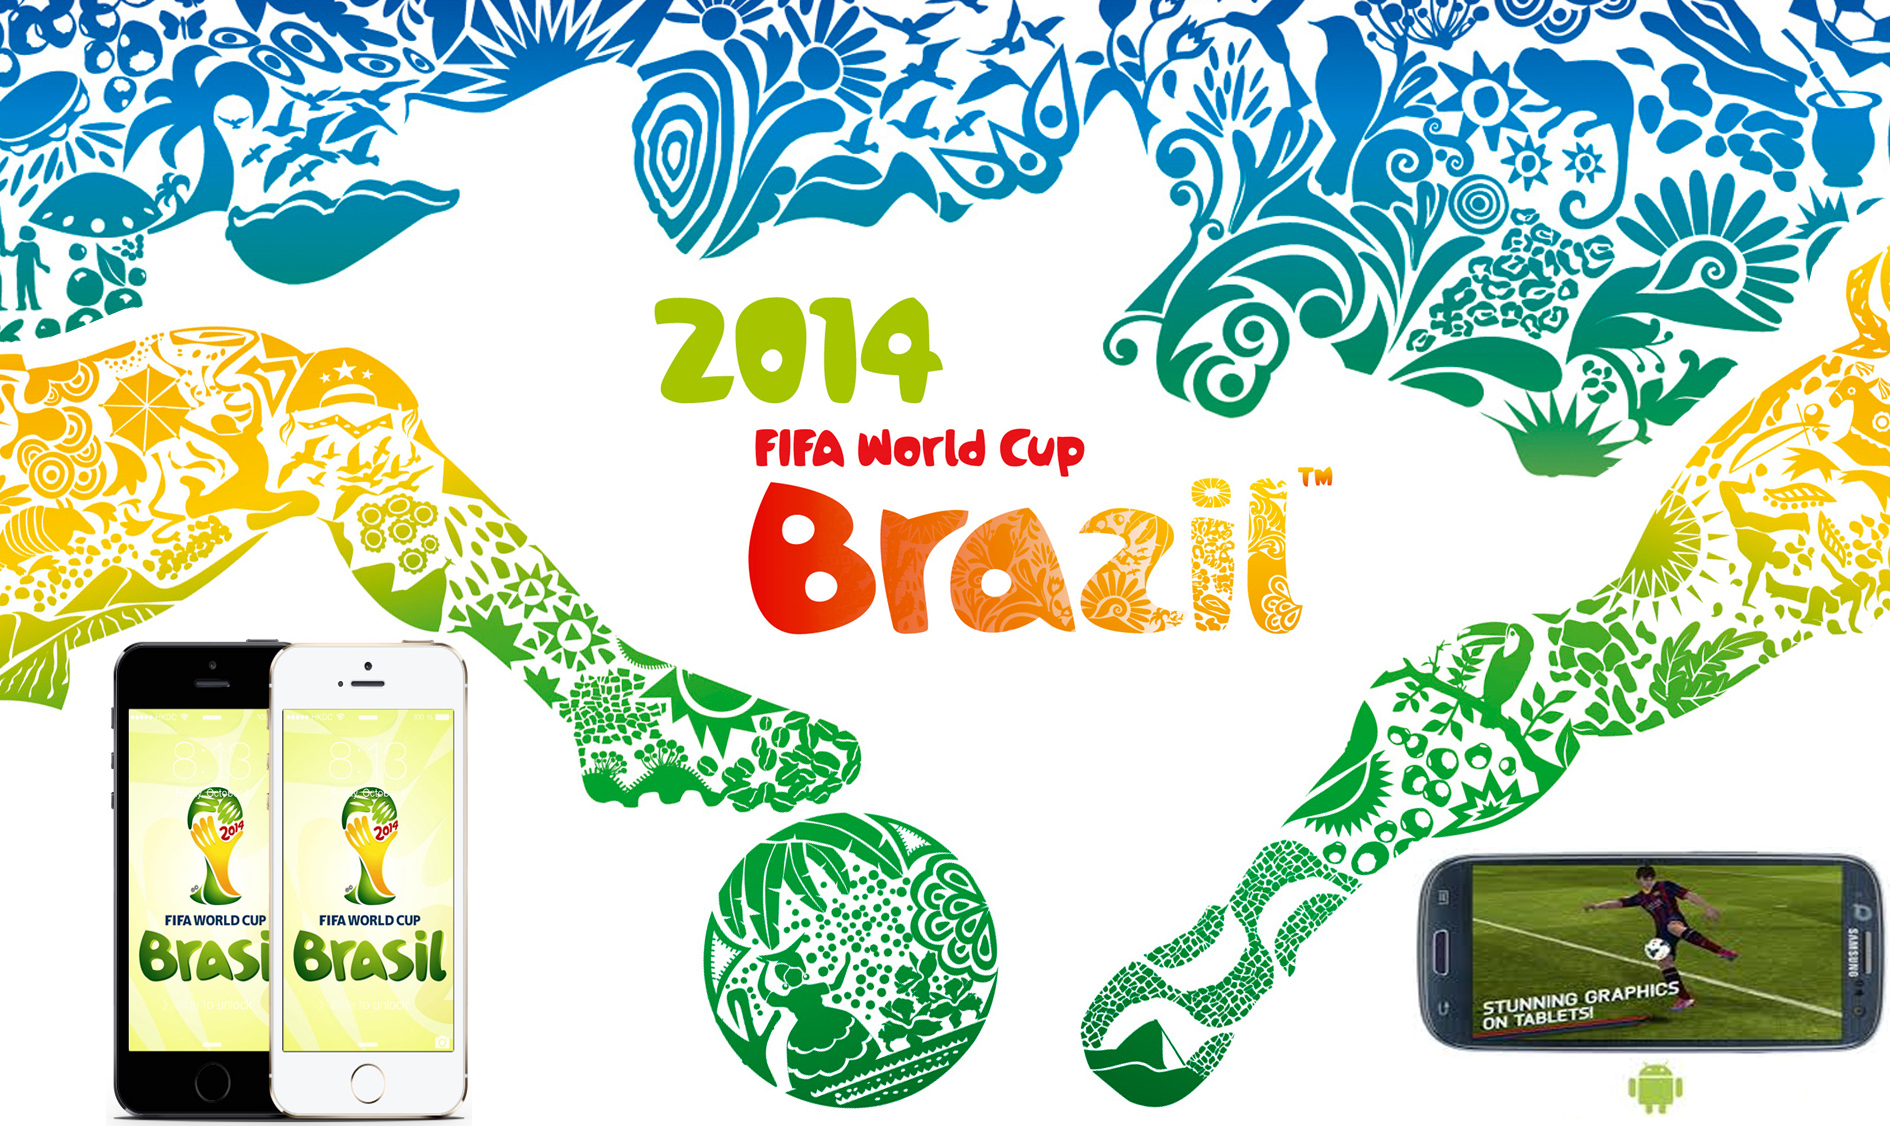 fifa-world-cup copy,Top 5 FIFA World Cup 2014 Games for Android And iOS,FIFA World Cup 2014 Games,